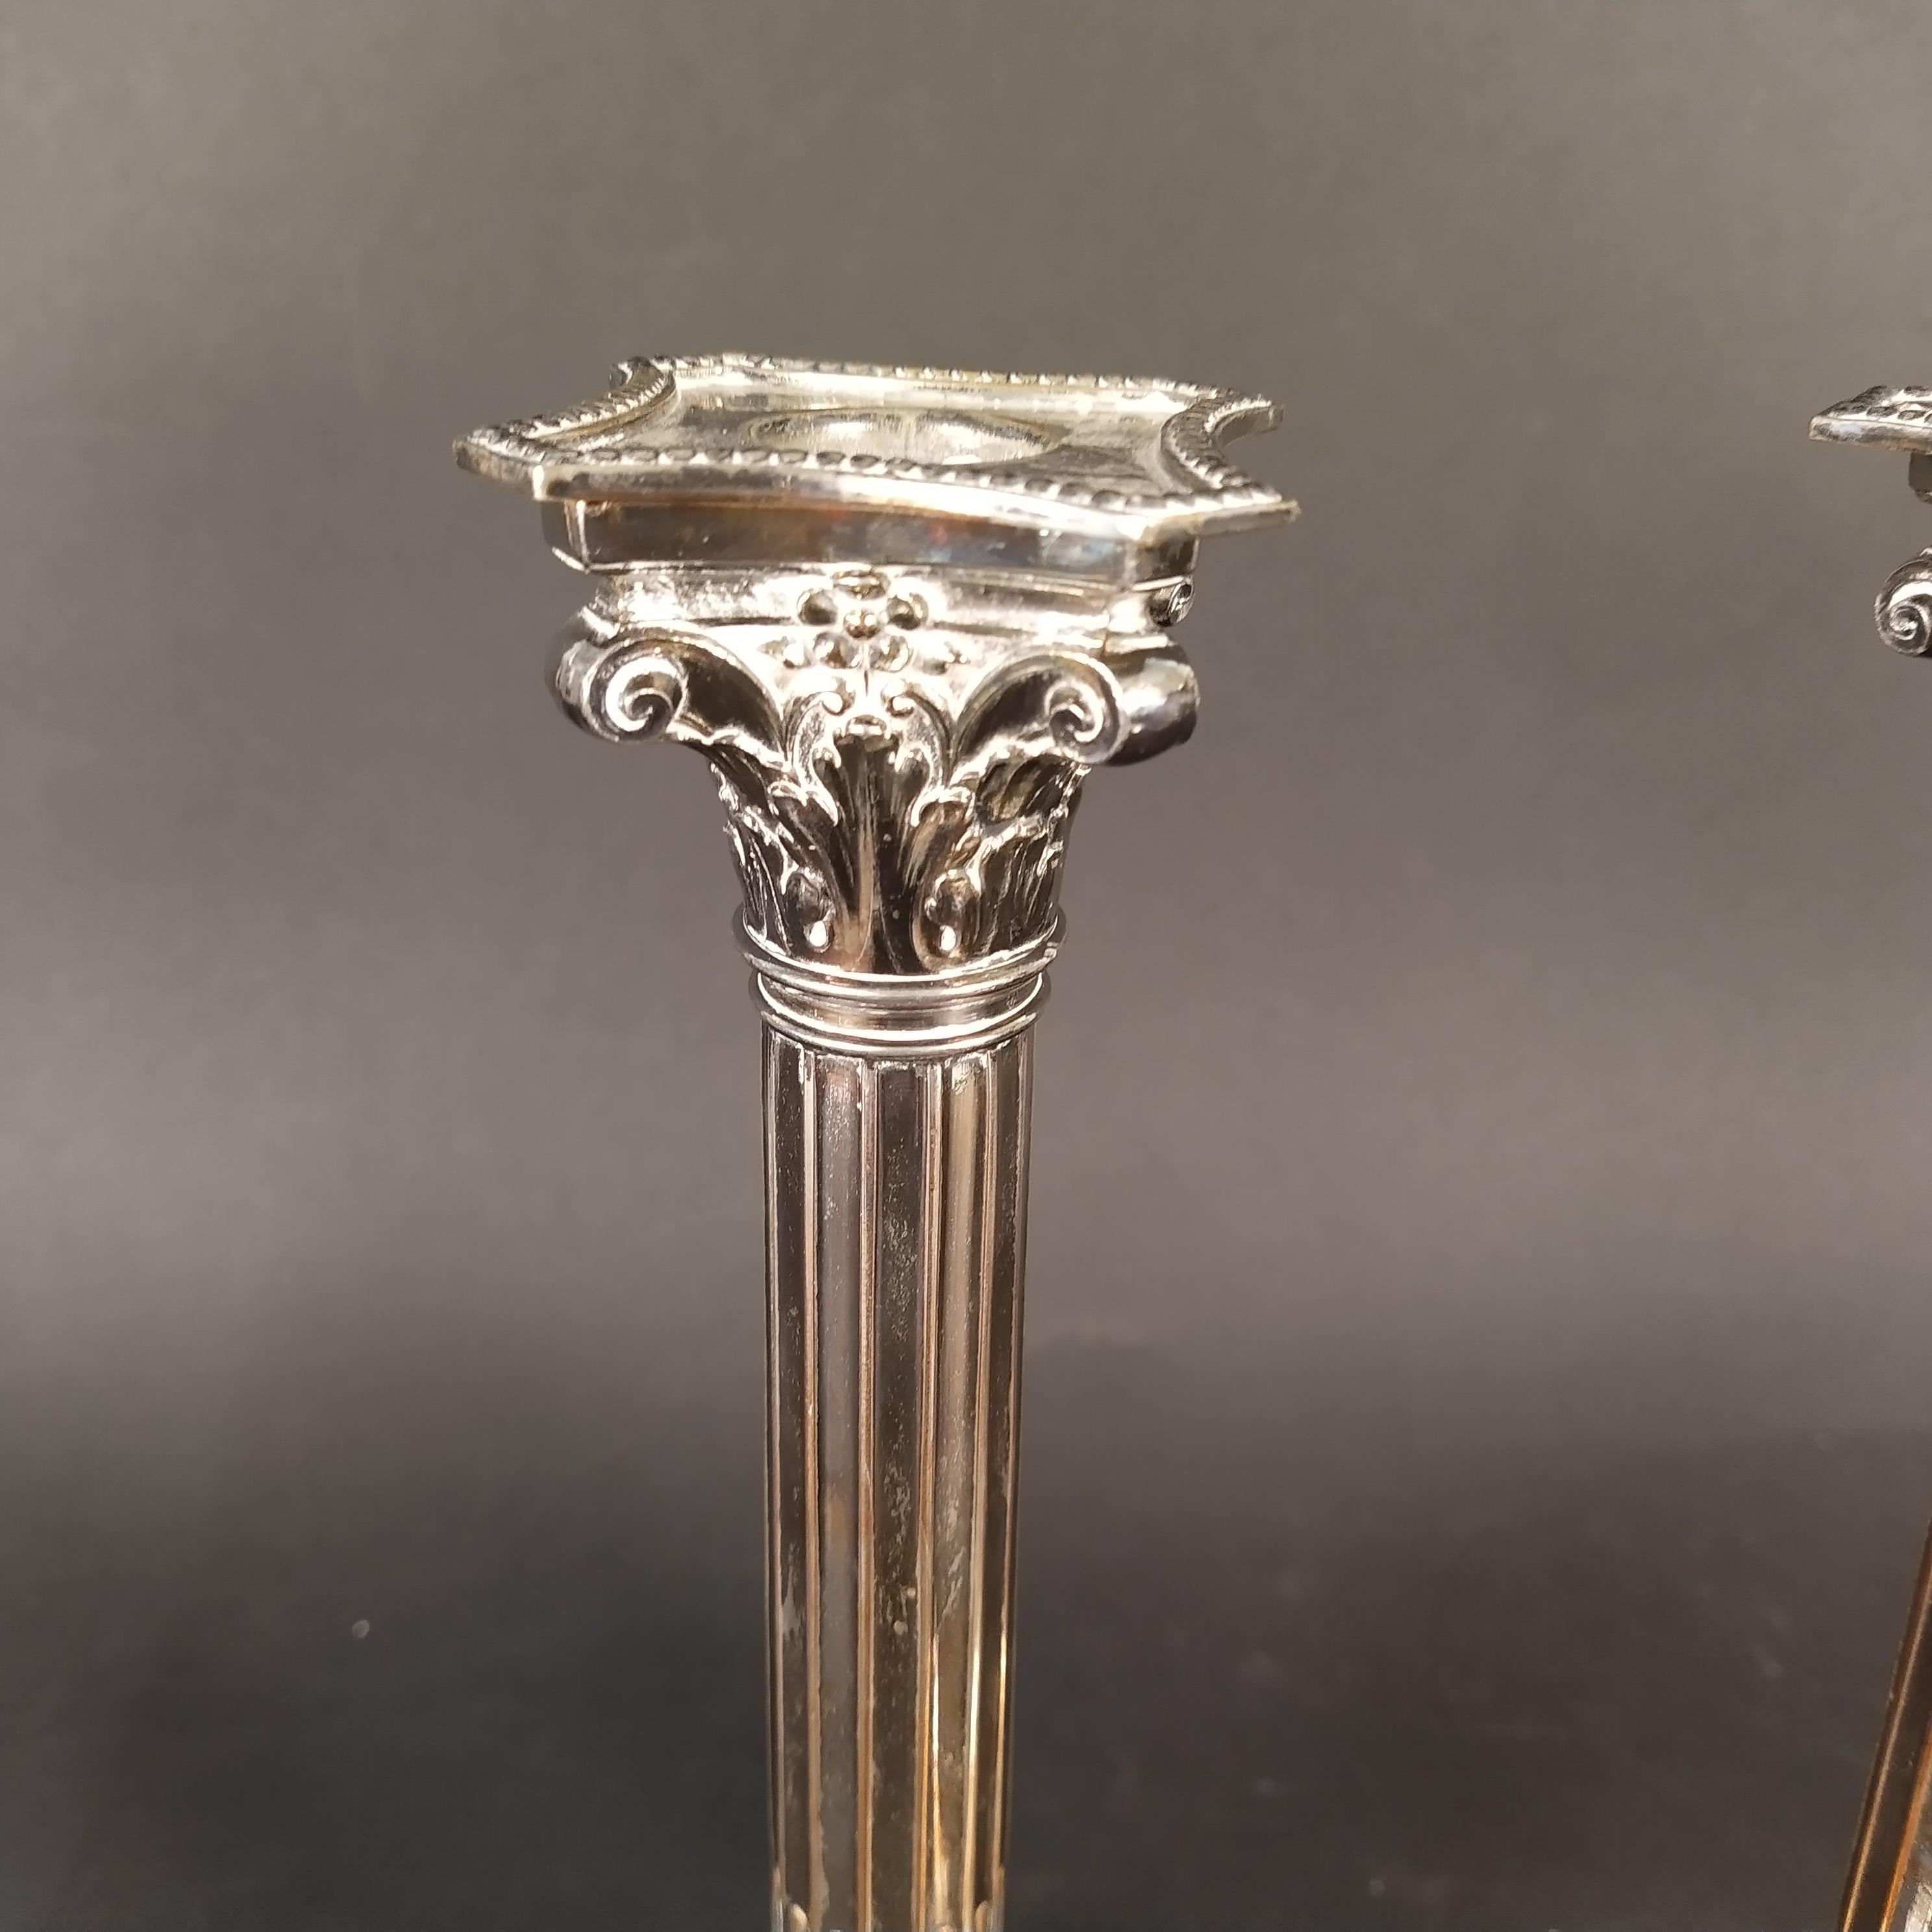 A pair of 19th Century Sheffield plated Corinthian column candlesticks with fluted stems, - Image 2 of 3